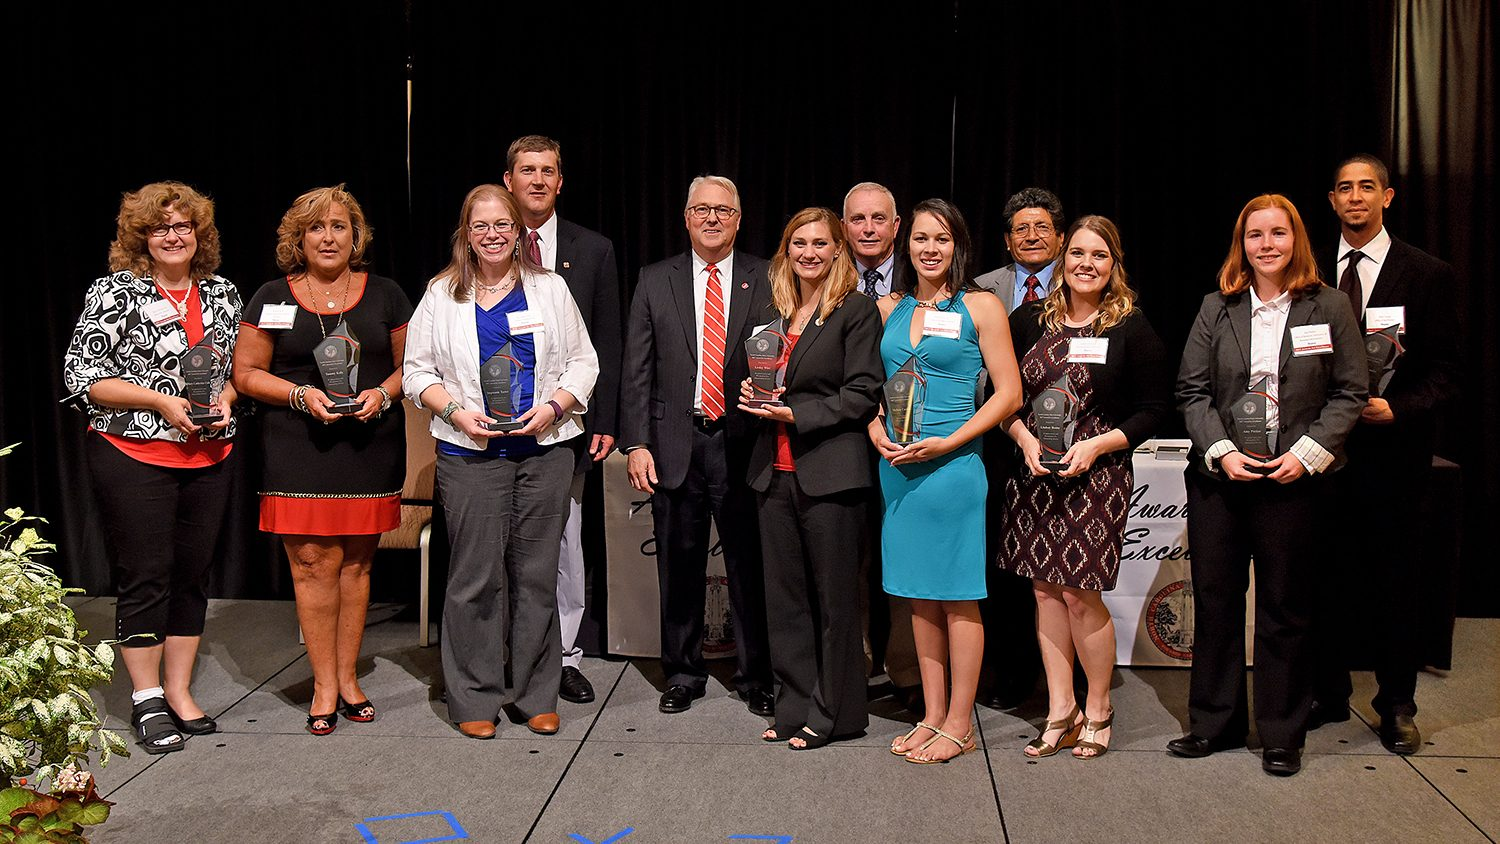 University Awards of Excellence winners